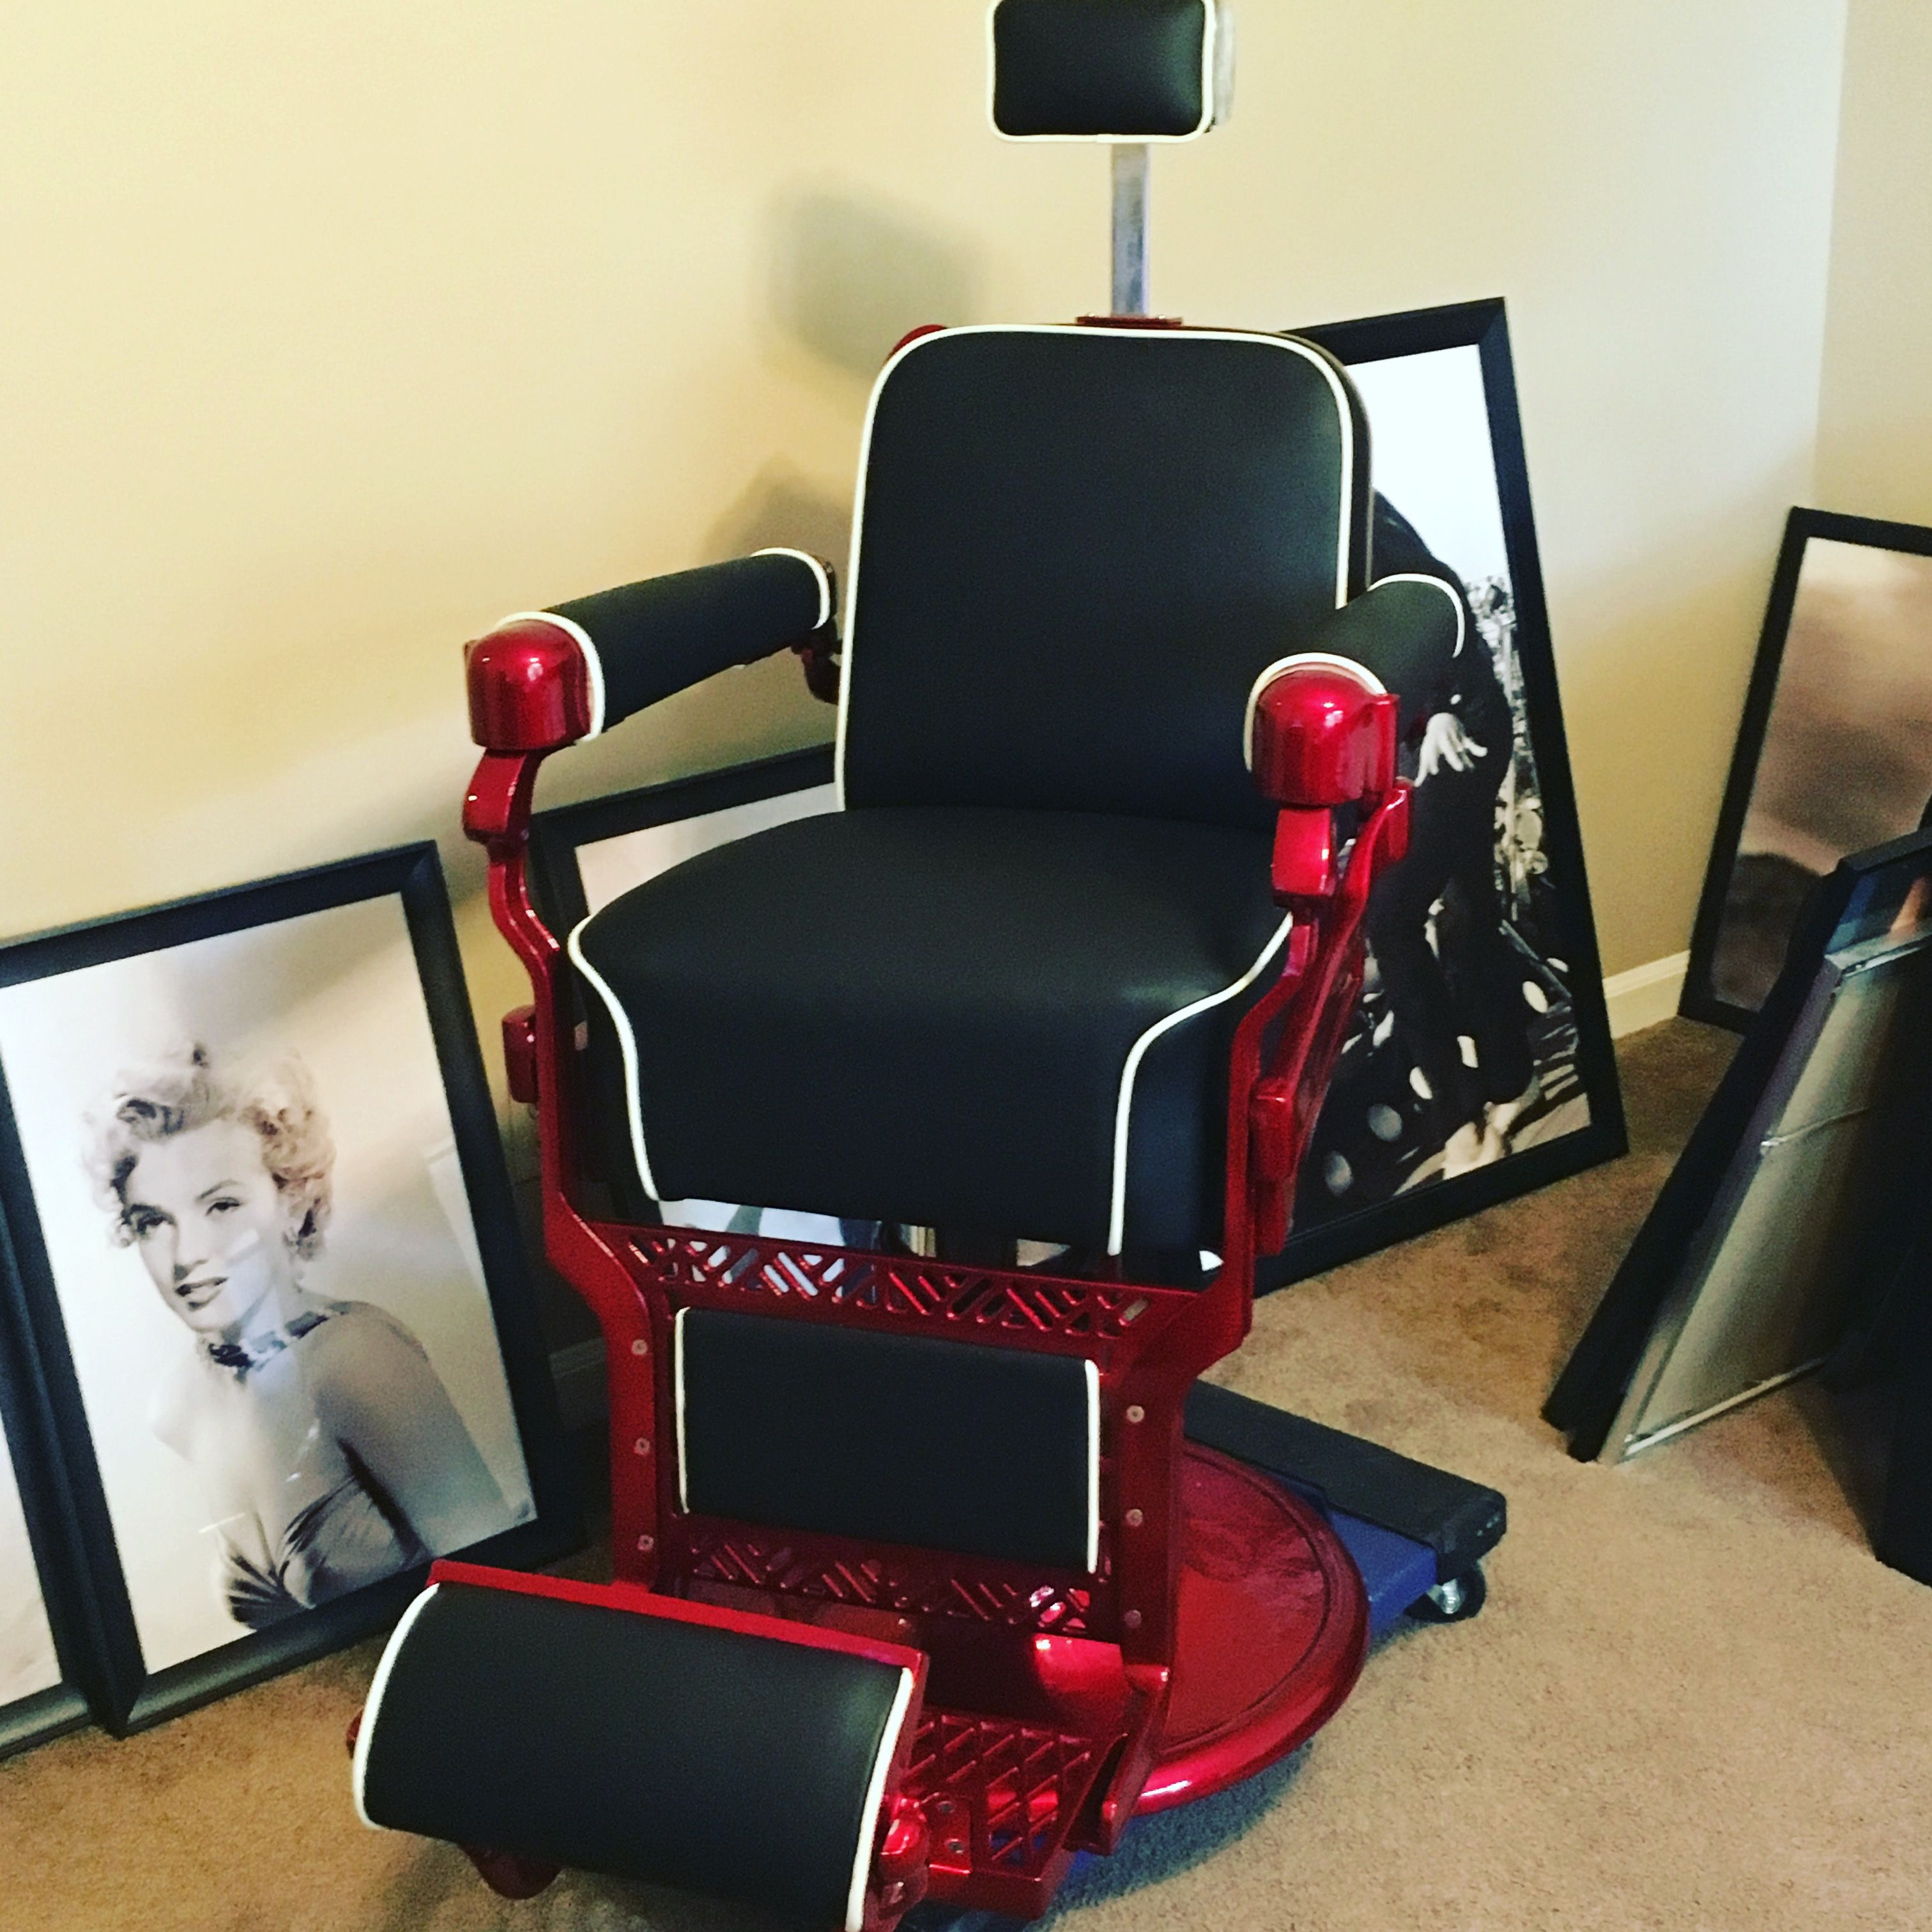 My Belmont Barber Chair that I m redoing to my liking